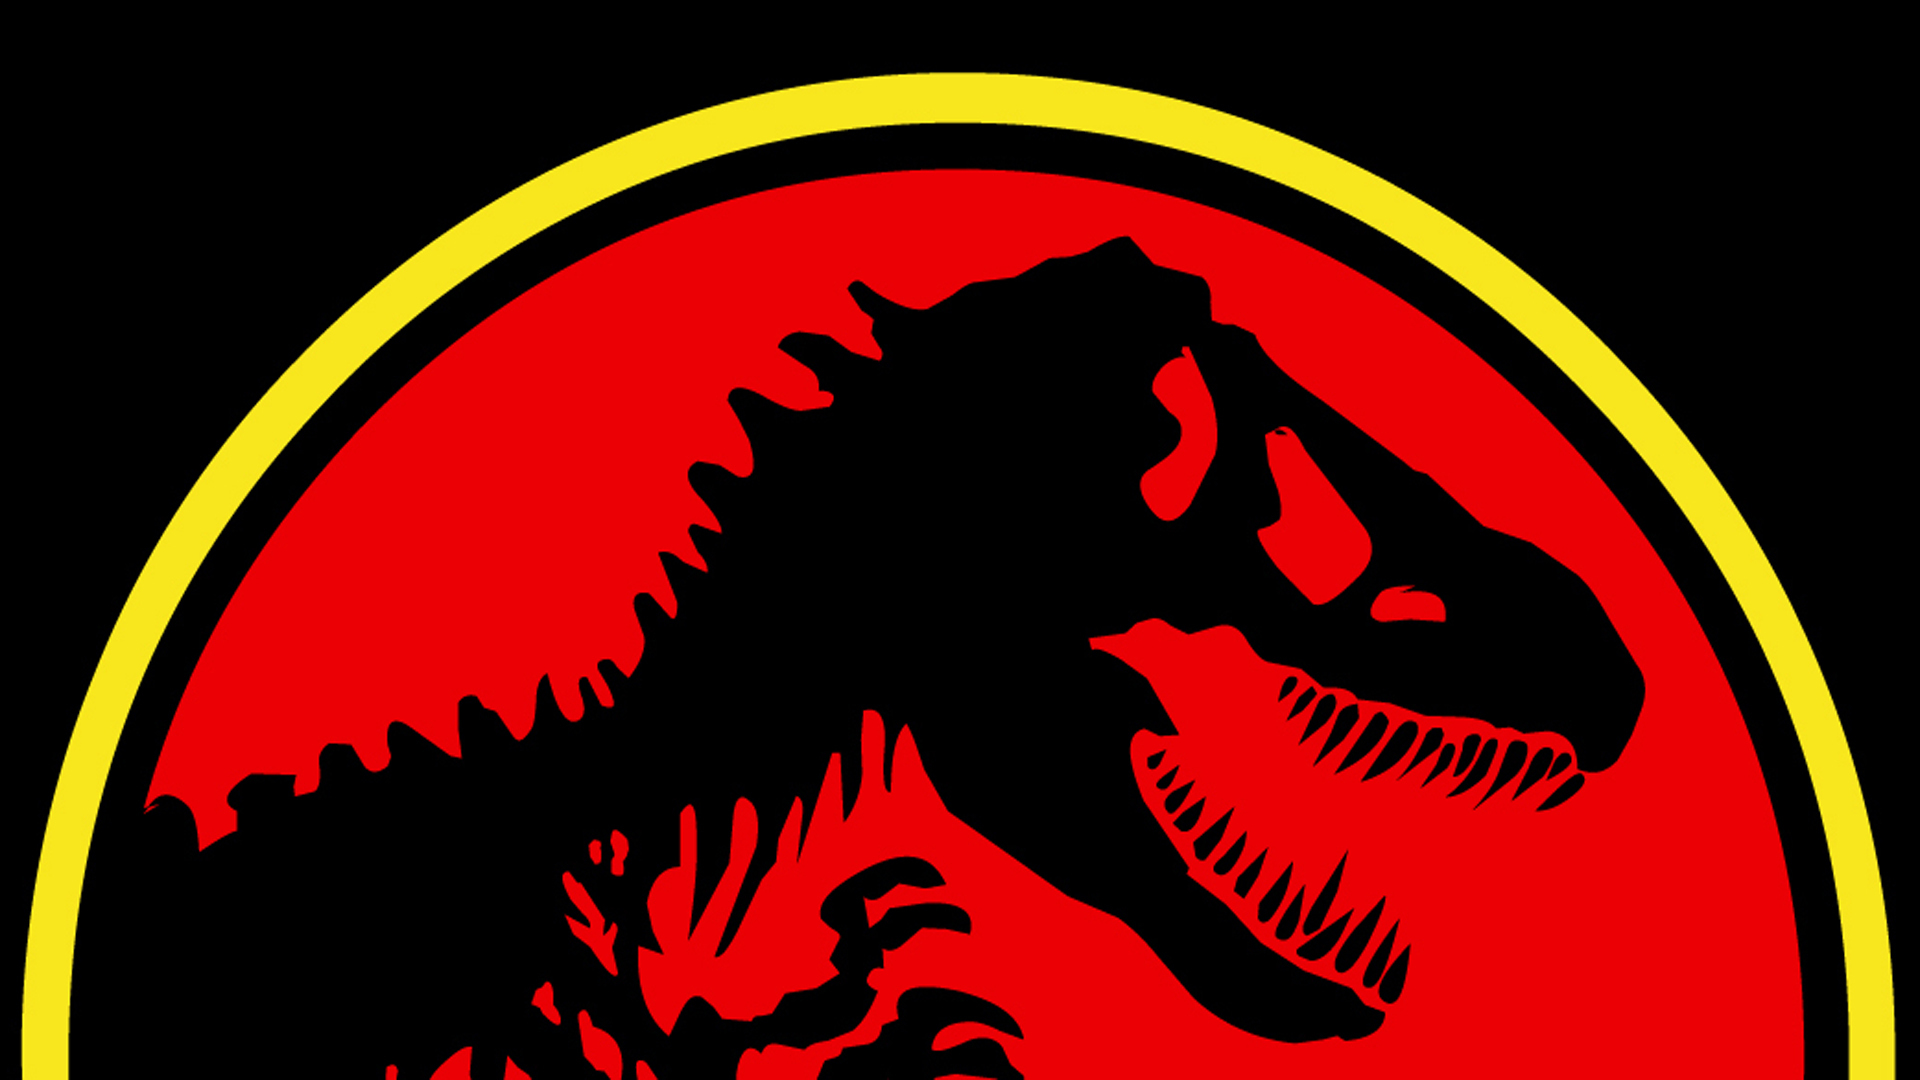 """Jurassic park logo clipart clip download 29 Differences Between the """"Jurassic Park"""" Book and Movie ... clip download"""